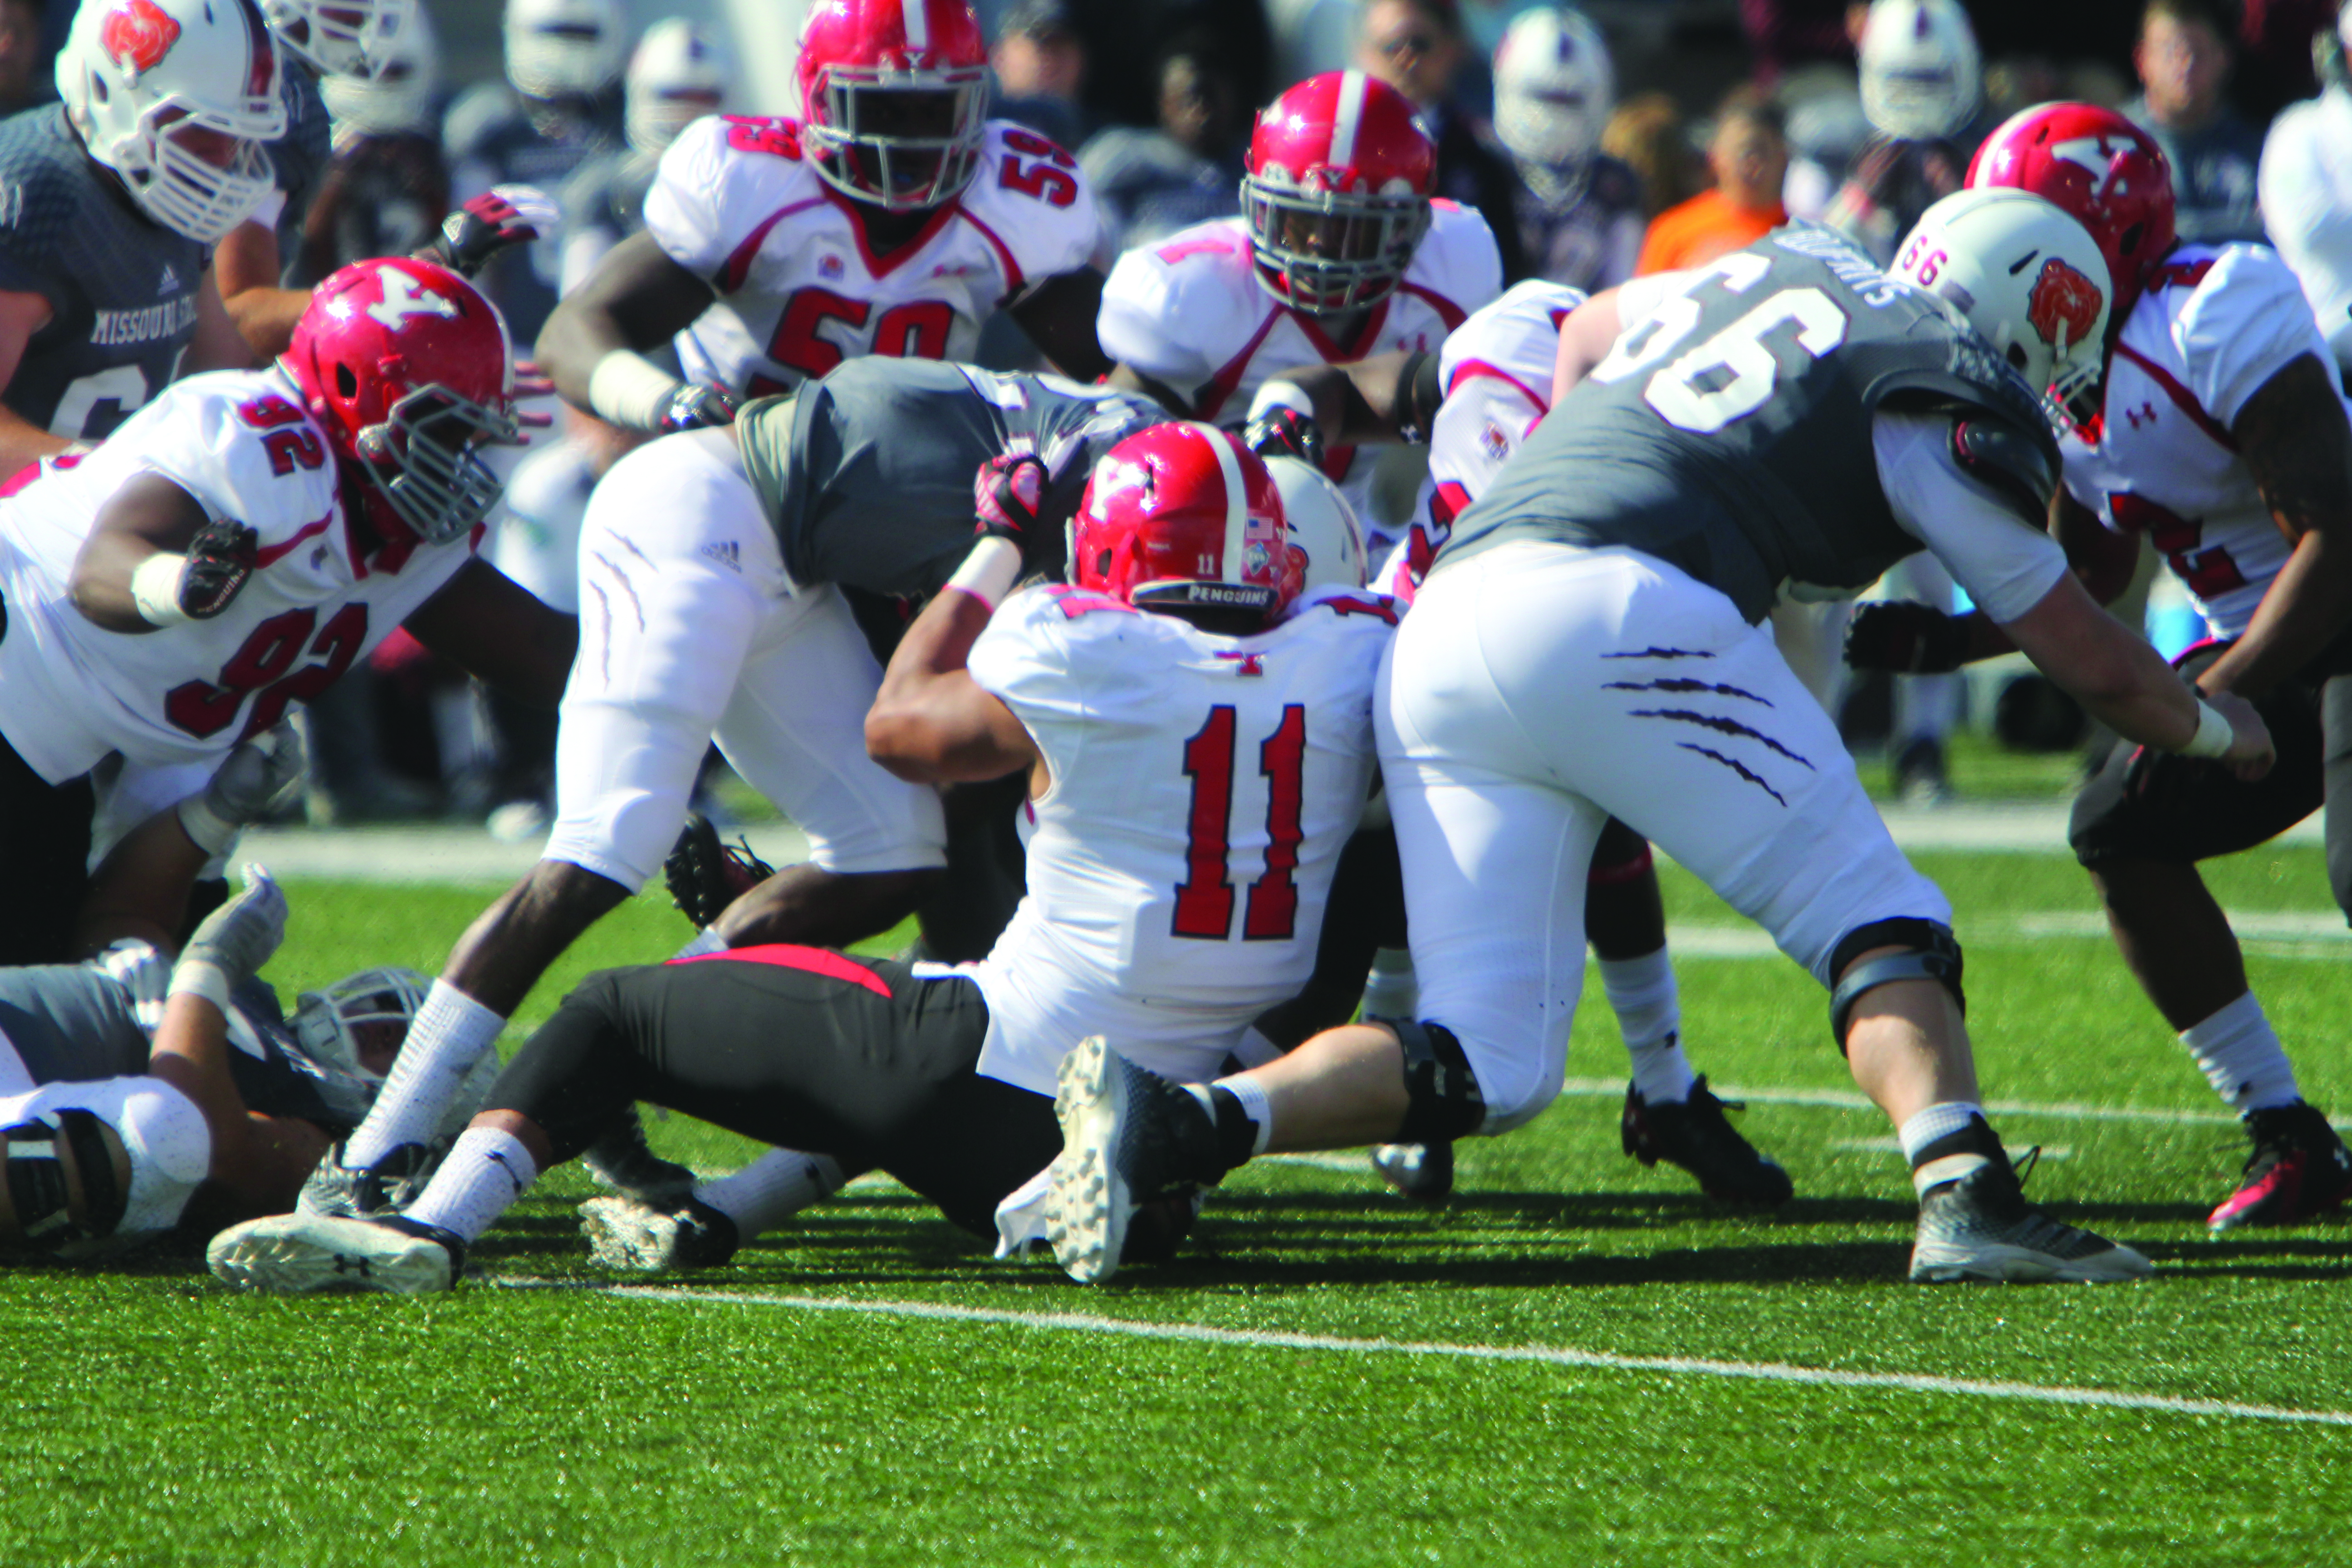 Youngstown State University's Derek Rivers (11) tackles Missouri State's Ryan Heaston (23) during Saturday's matchup at Missouri State University in Springfield, Missouri. The Penguins defeated the Bears 14-7, behind a strong defensive performance. Photo by Dustin Livesay/ The Jambar.